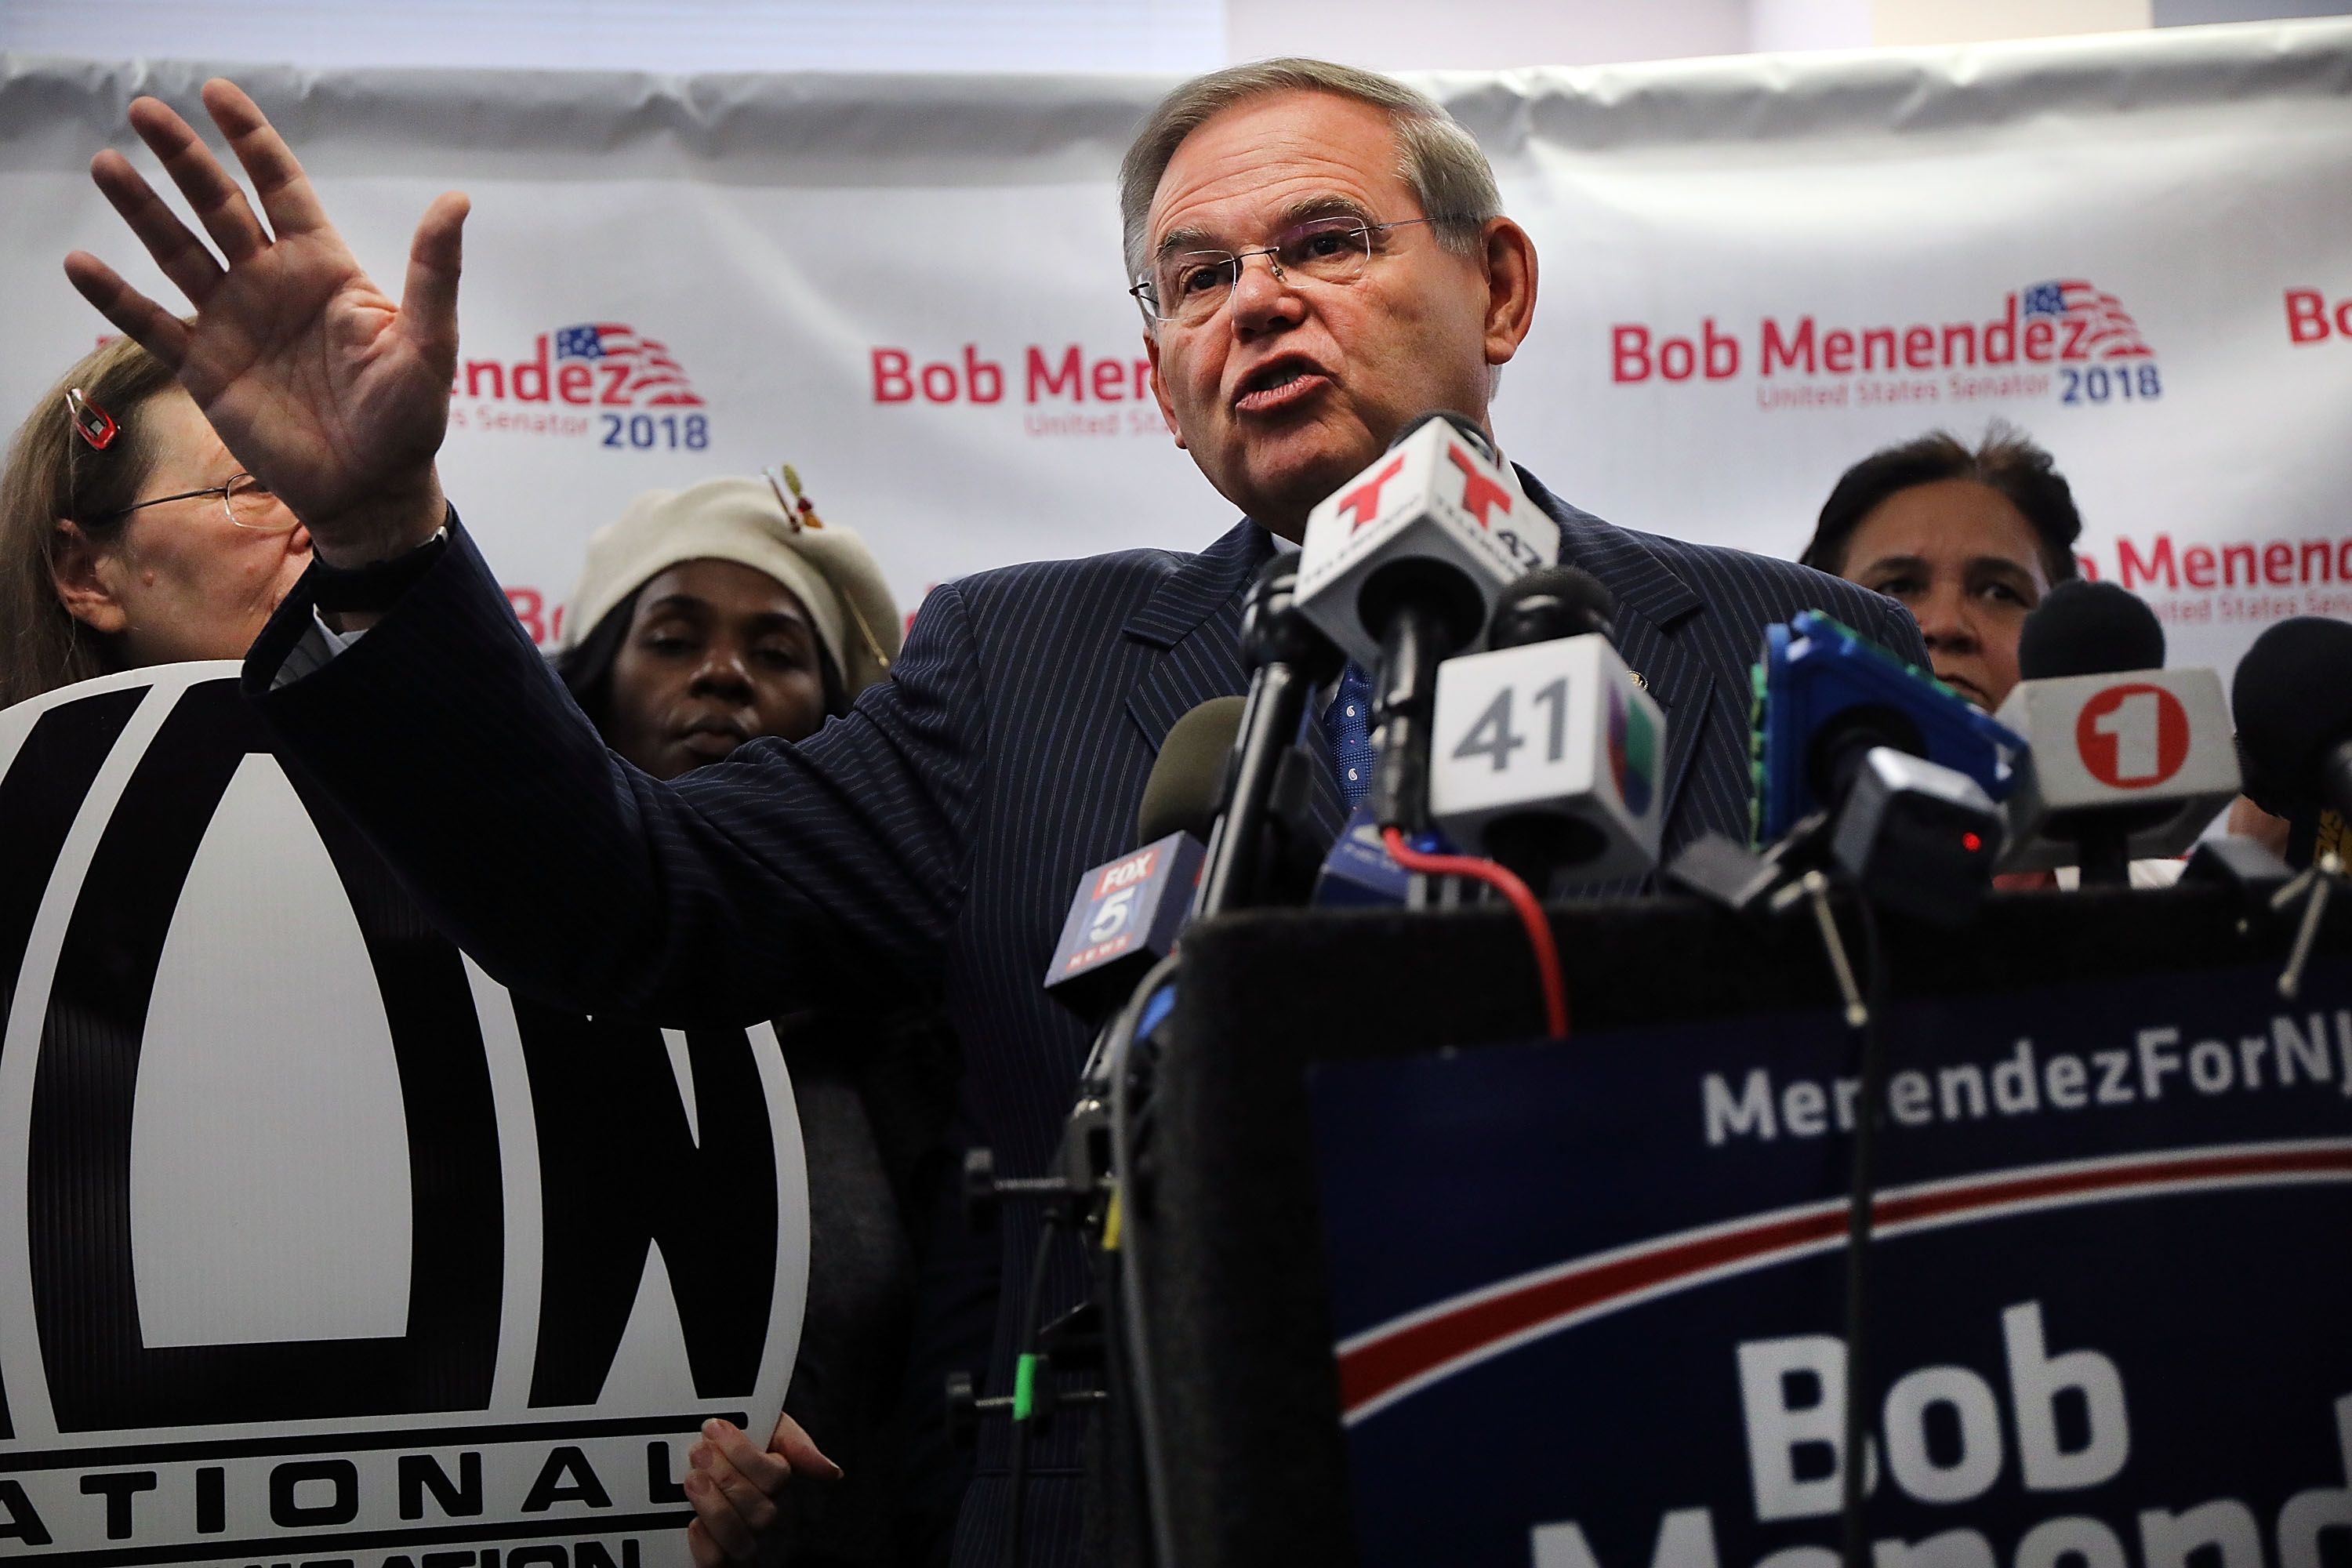 Surrounded by female supporters, New Jersey Senator Robert Menendez speaks at a news conference to address accusations by his Republican opponent that he slept with underage sex workers during trips to the Dominican Republic on October 17, 2018 in Hackensack, New Jersey. The claims originally emerged before Menendez was re-elected to the Senate in 2012 and despite an extensive investigation by the FBI and reporters, the accusations have never been substantiated. A million-dollar ad campaign launched on Monday by opponent, Republican Senate candidate nomineeÊBob Hugin, have used the unproven allegations against Menendez. (Spencer Platt/Getty Images)